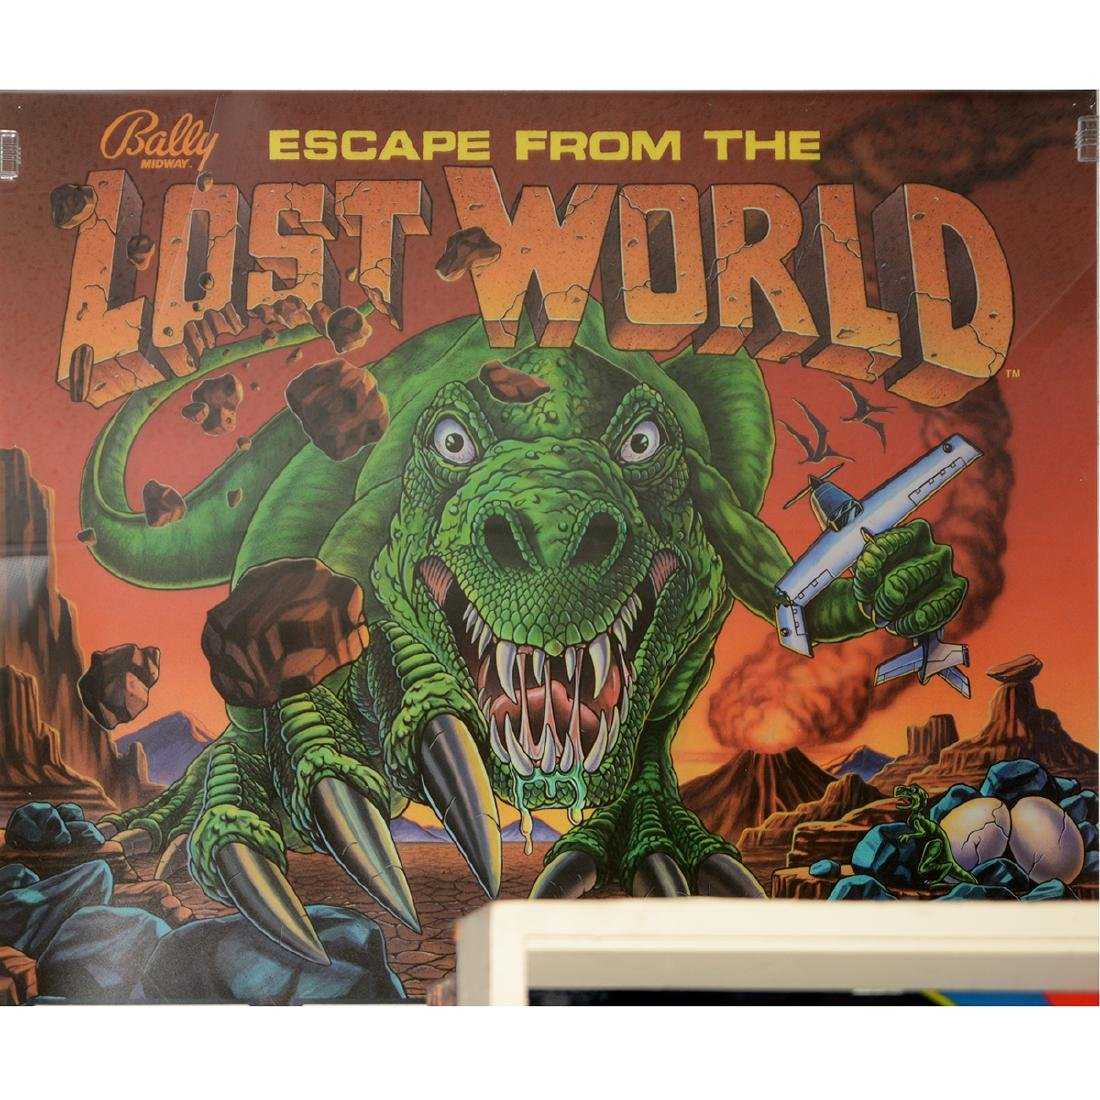 Escape From the Lost World Pinball Translite, Bally